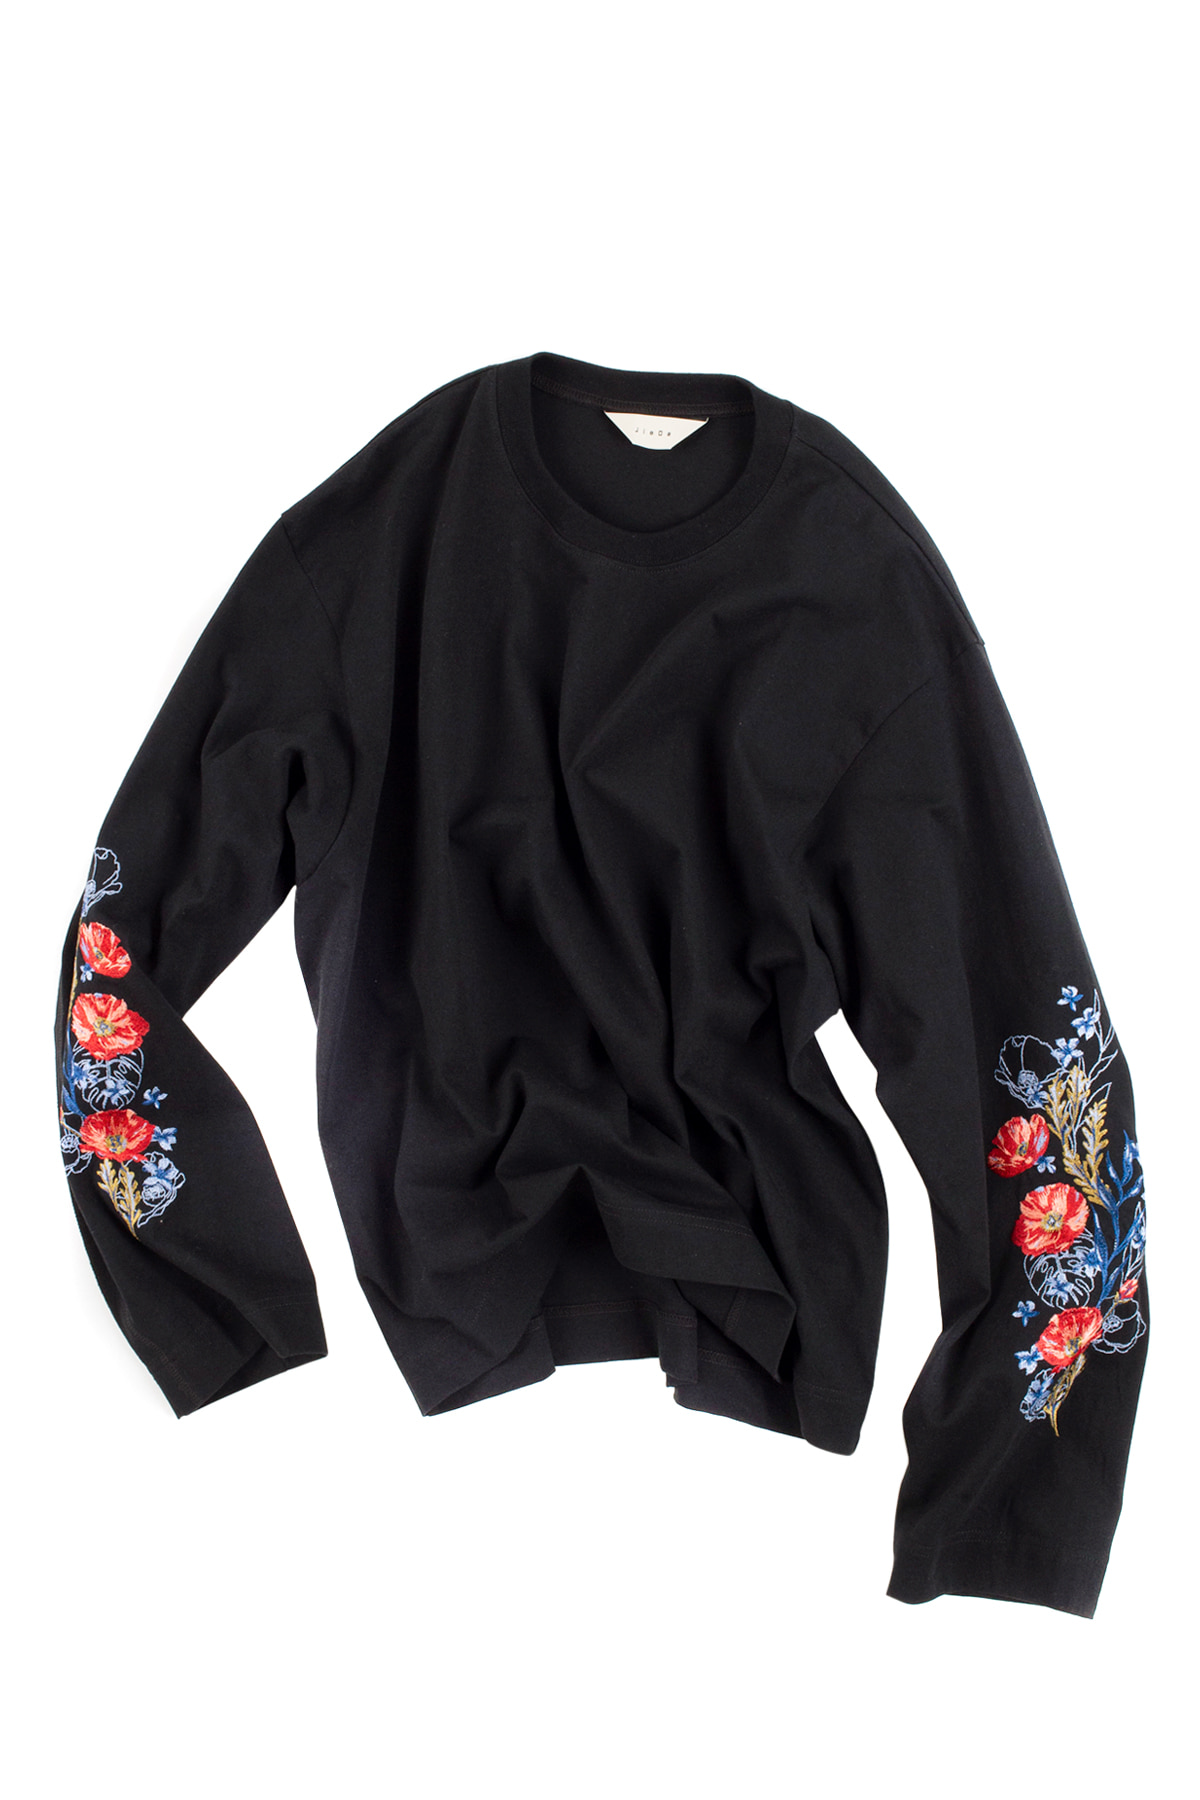 JieDa : Flower Embroiderey L/S (Black)